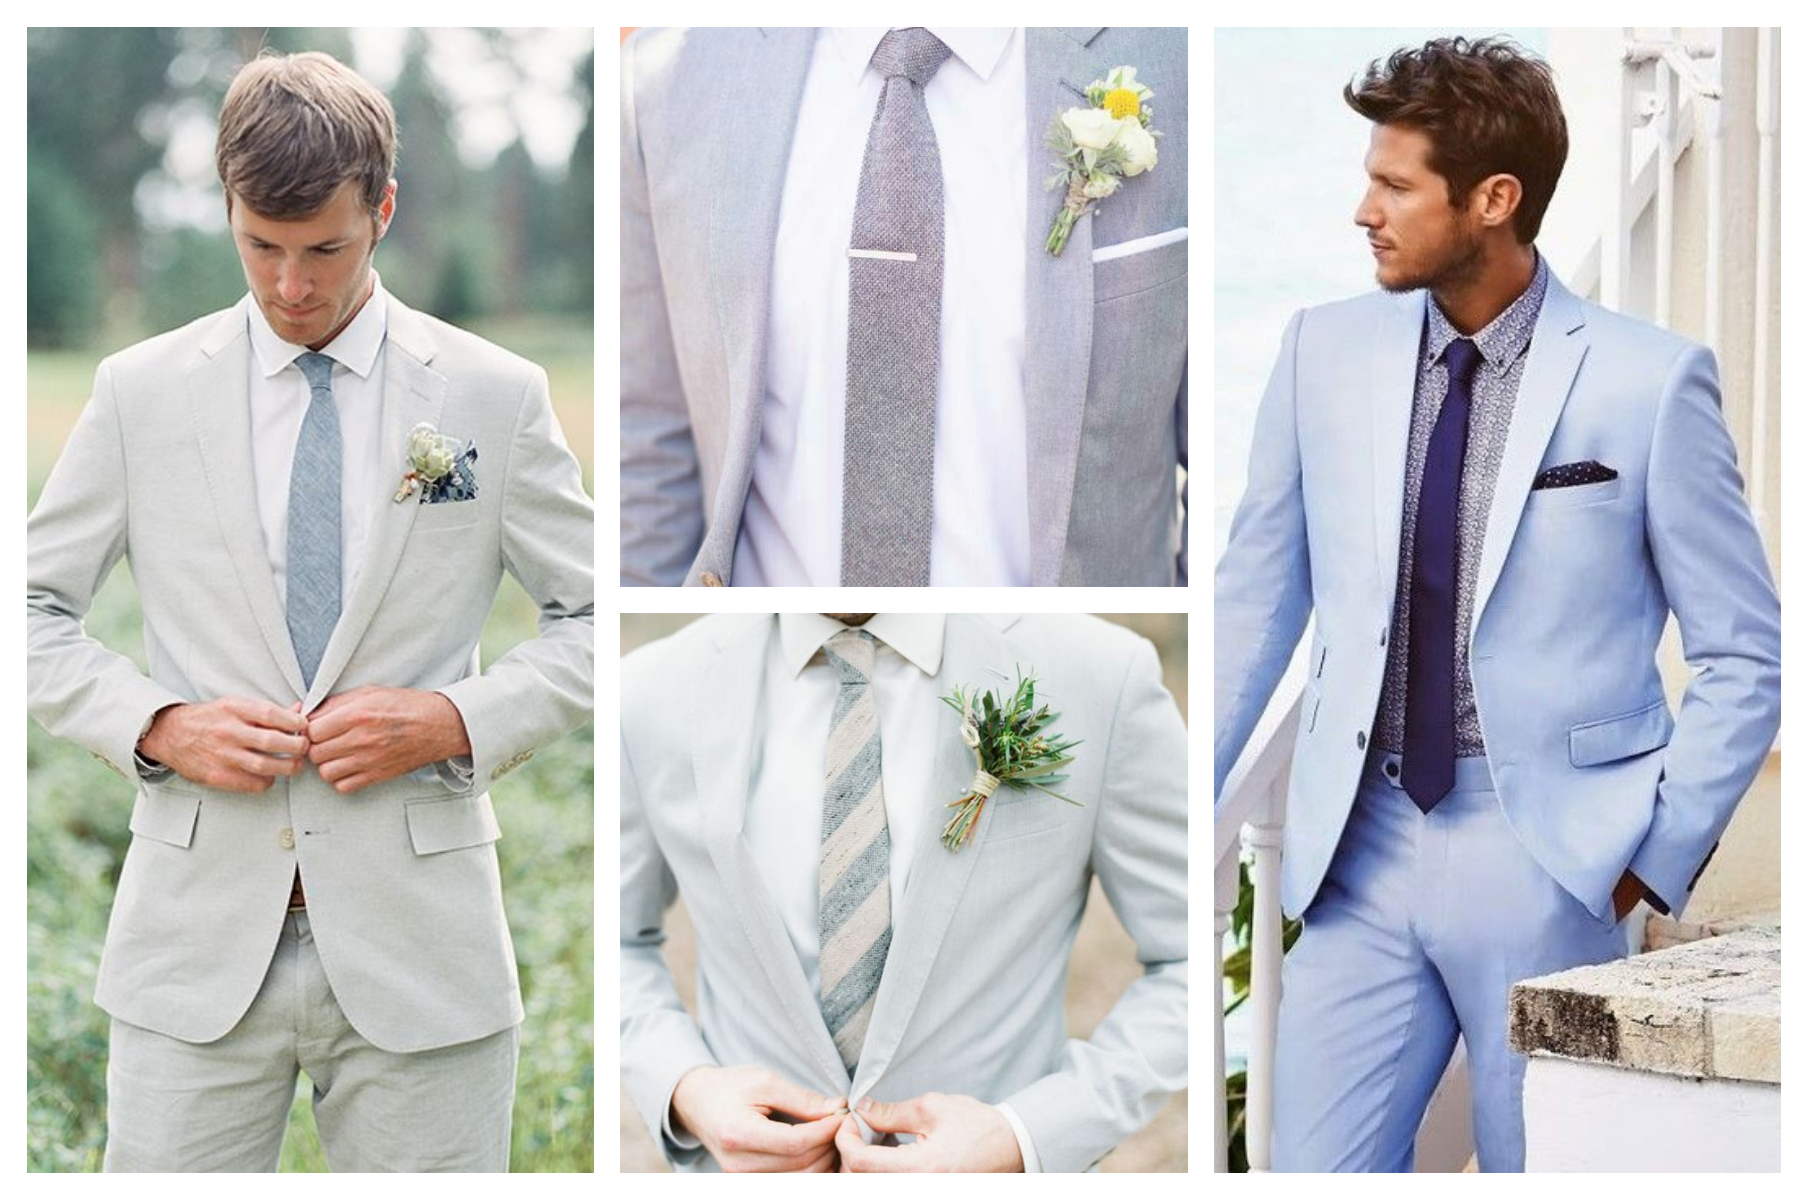 10+ Best Designs of Wedding Suits For Men (Latest)